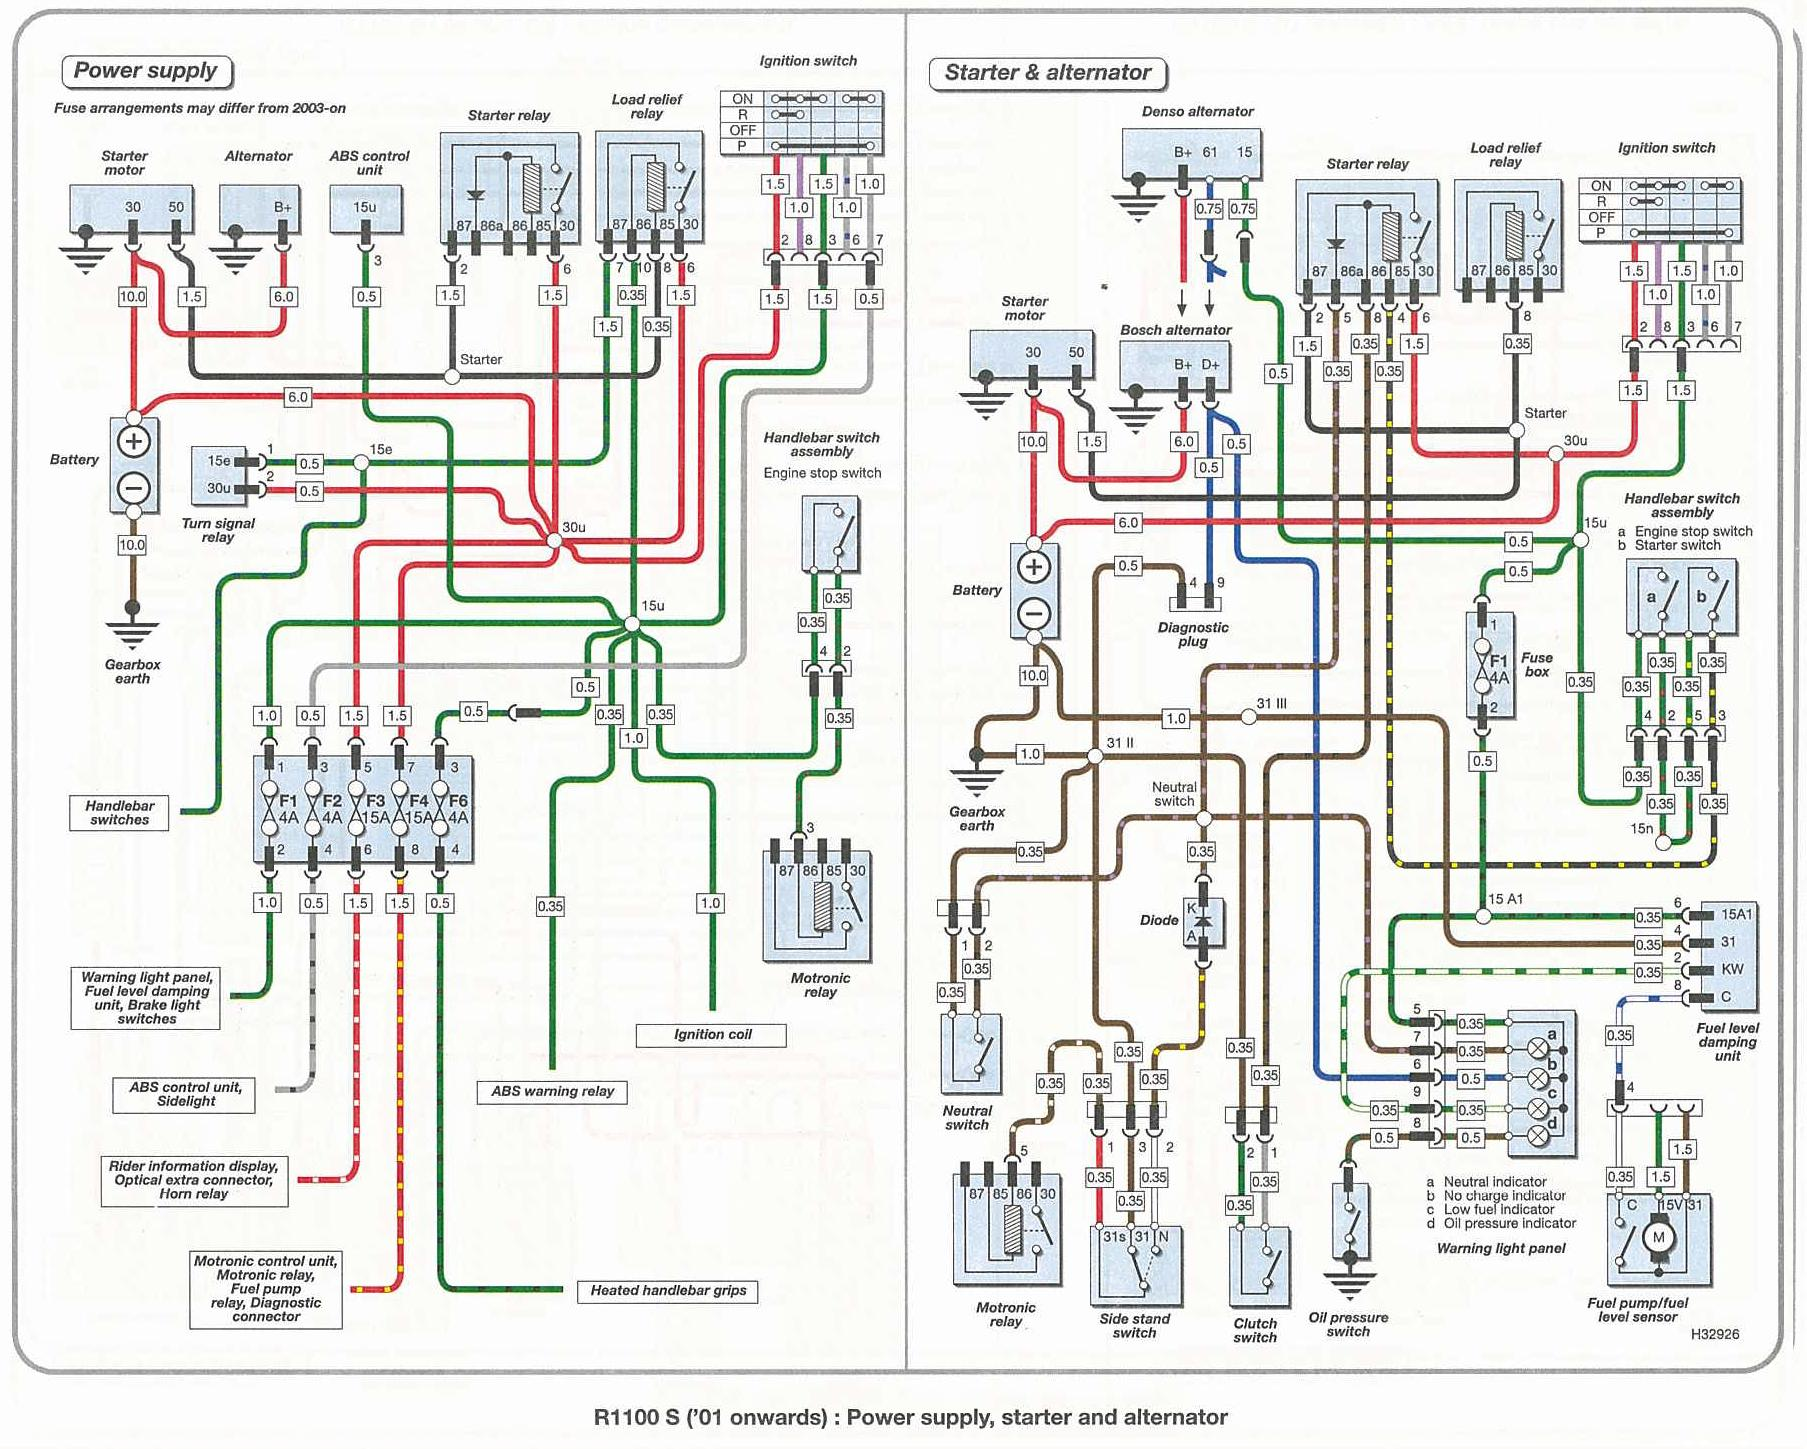 wiring05 bmw r1100s wiring diagrams honda vtr 250 wiring diagram at suagrazia.org